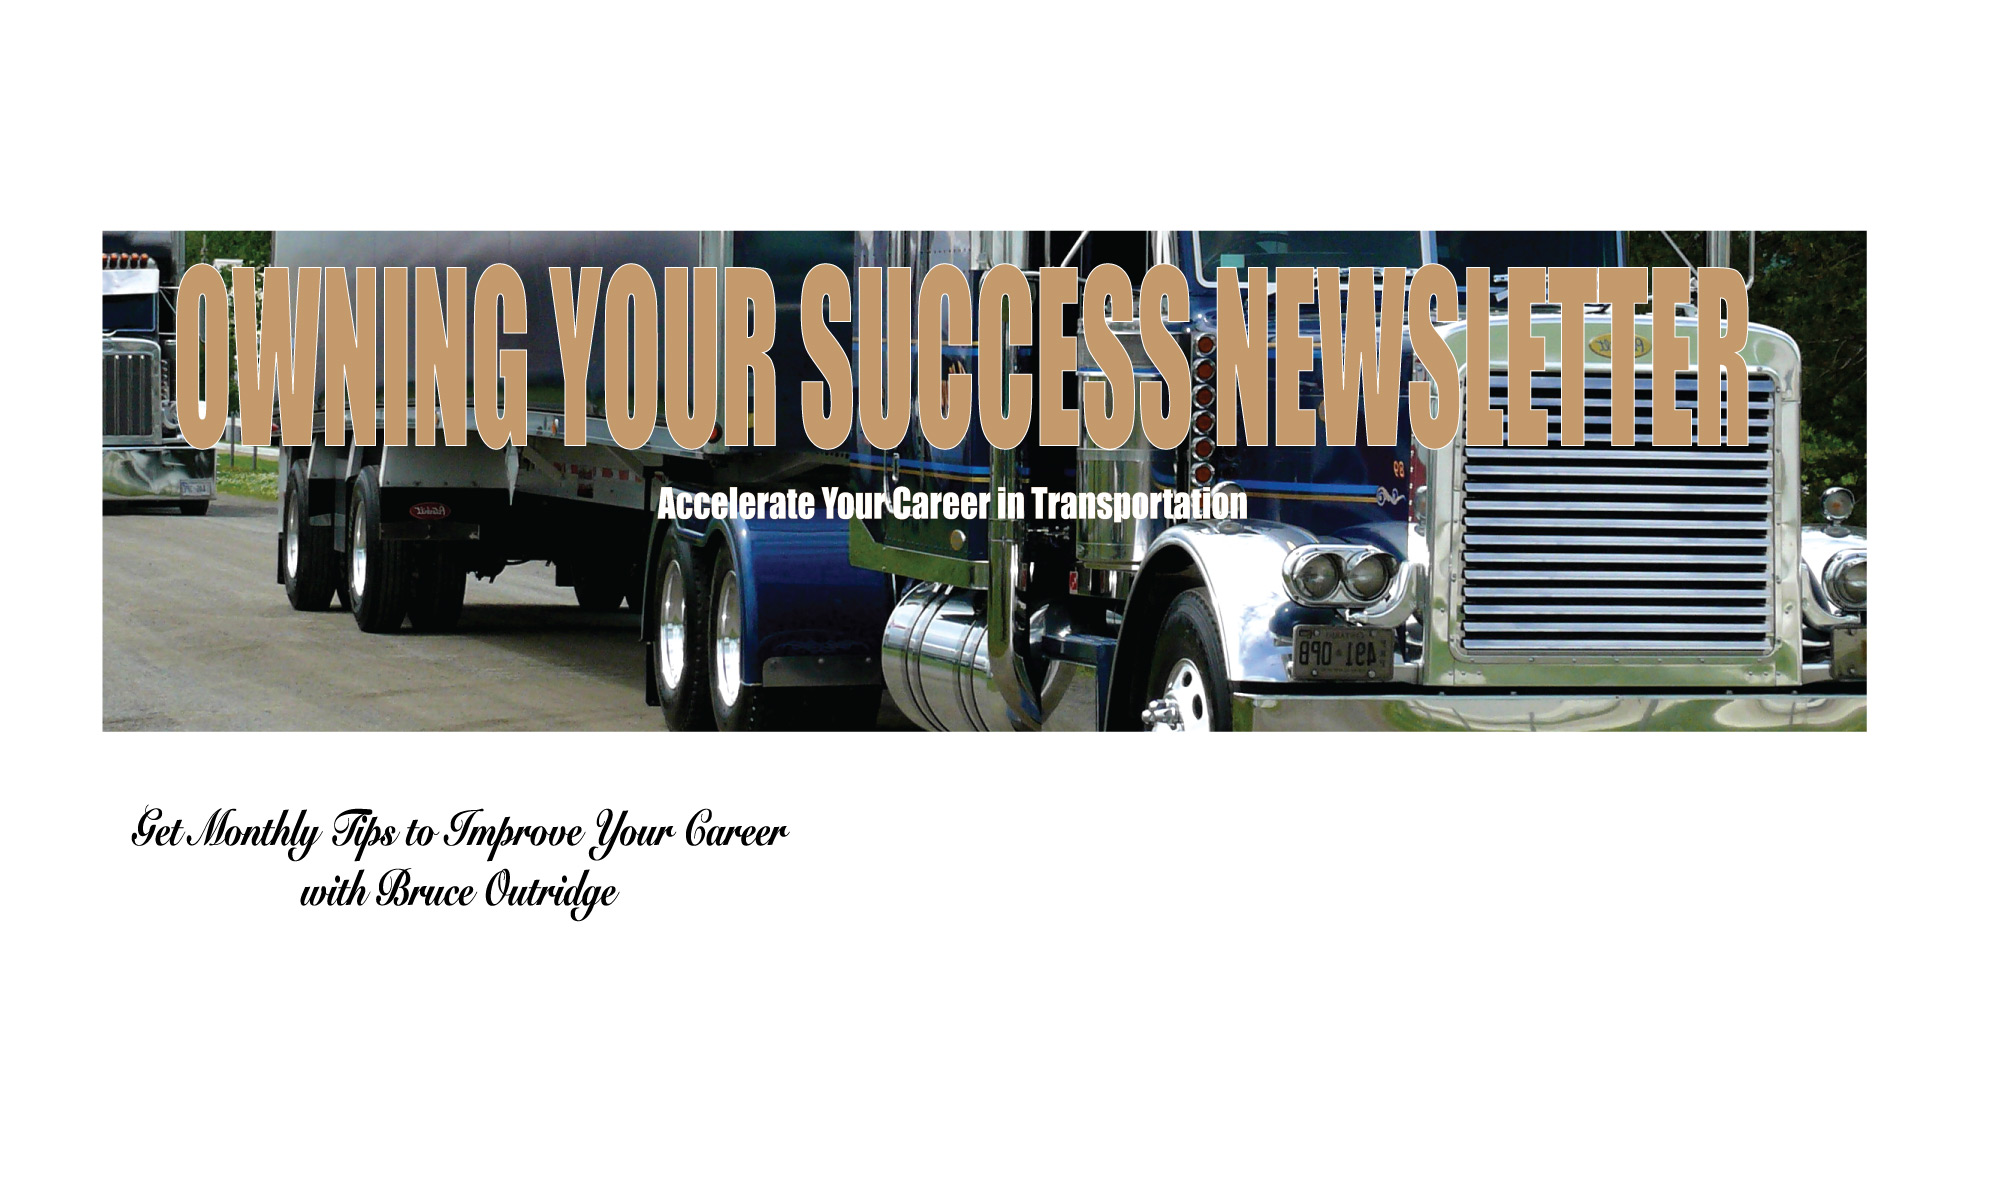 Get the Owning Your Success Newsletter